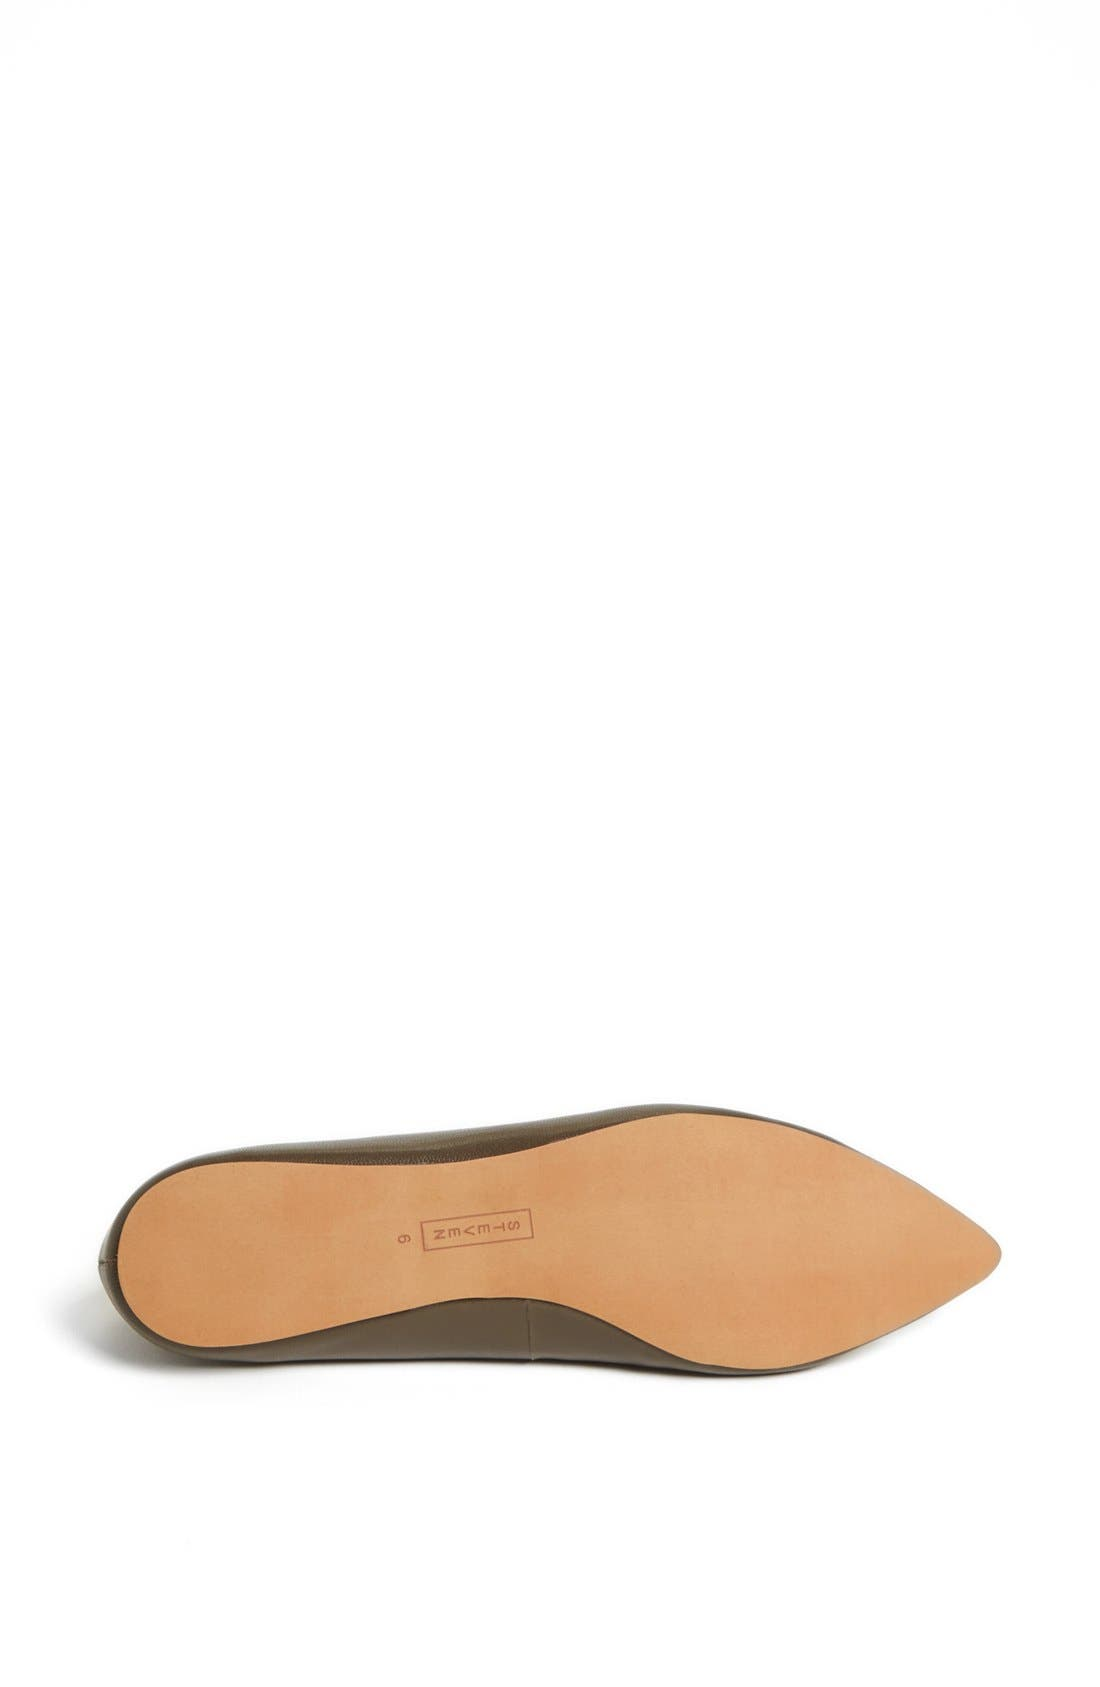 Alternate Image 4  - Steven by Steve Madden 'Elatedd' Pointed Toe Flat